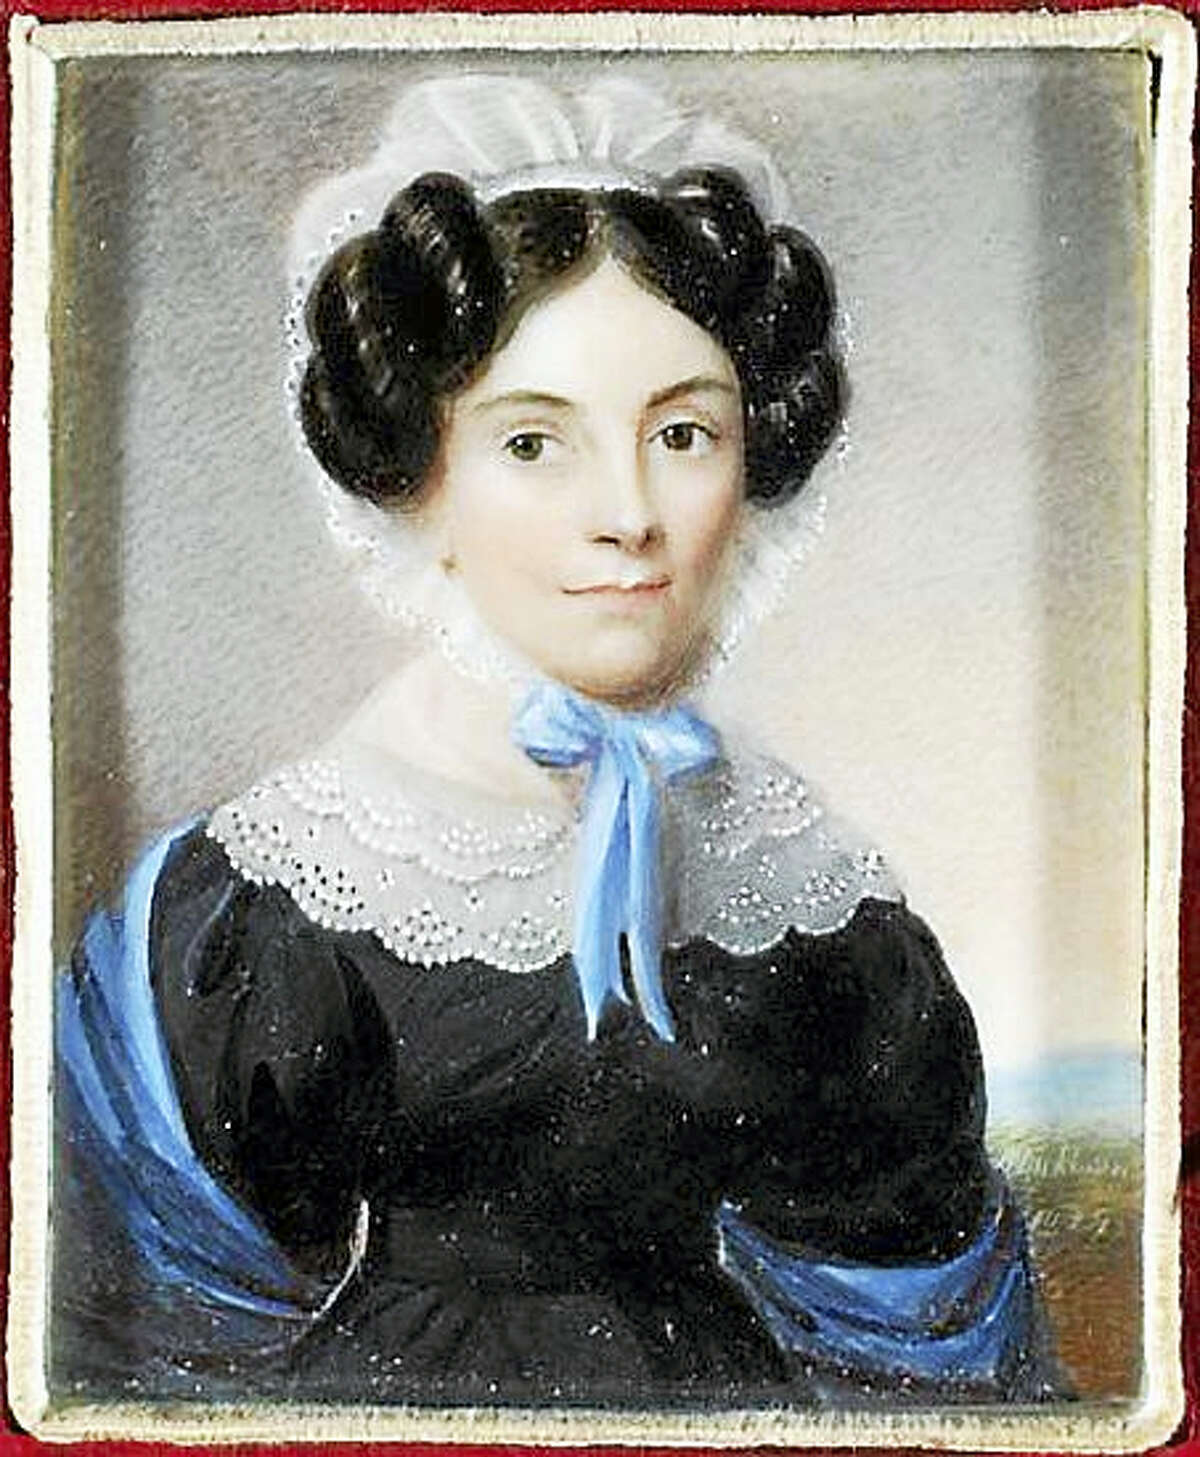 """A miniature portrait, one of many to be included in """"Miniature Marvels,"""" a fundraiser for the Litchfield Historical Society in May."""